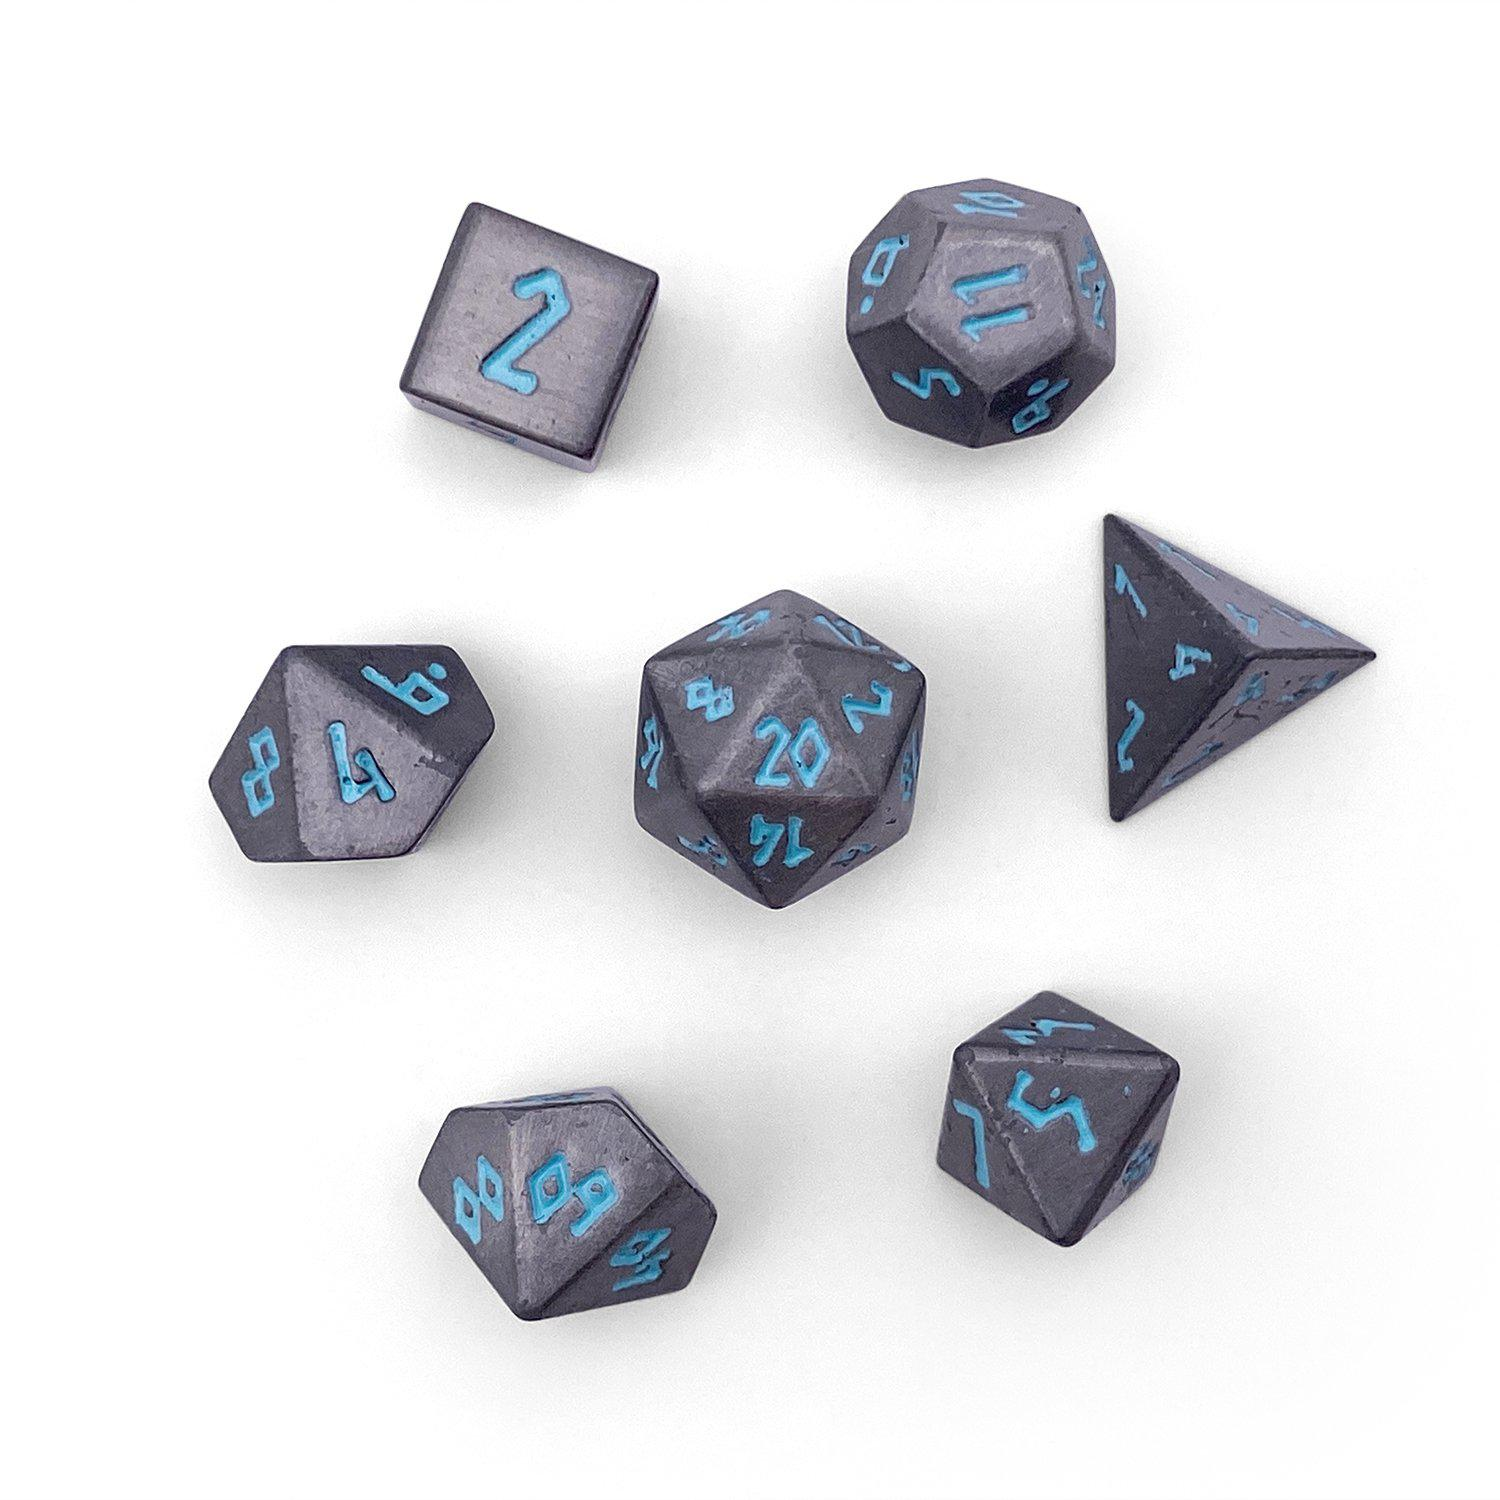 Norse Foundry Set Of 7 Spellbound Mini Metal Polyhedral 10mm Pebble Dice Rpg Math Games Dnd Pathfinder Game Accessories Toys Games The top coupon for norse foundry at the moment is 15% off at norse foundry. verco